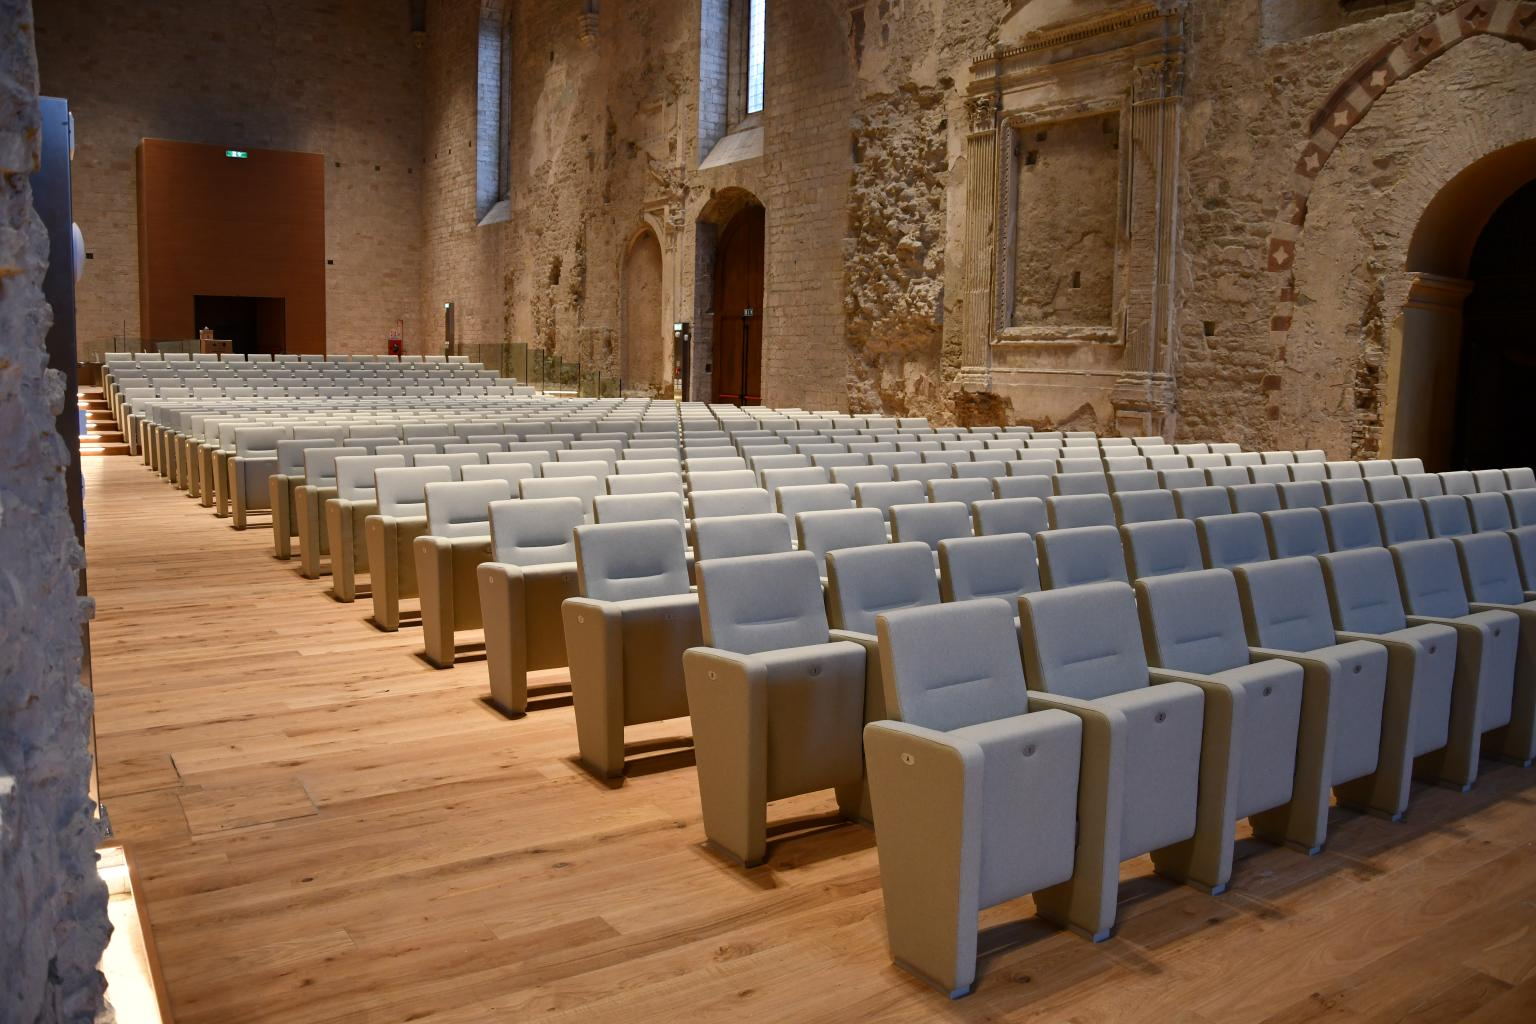 Auditorium di San Francesco al Prato